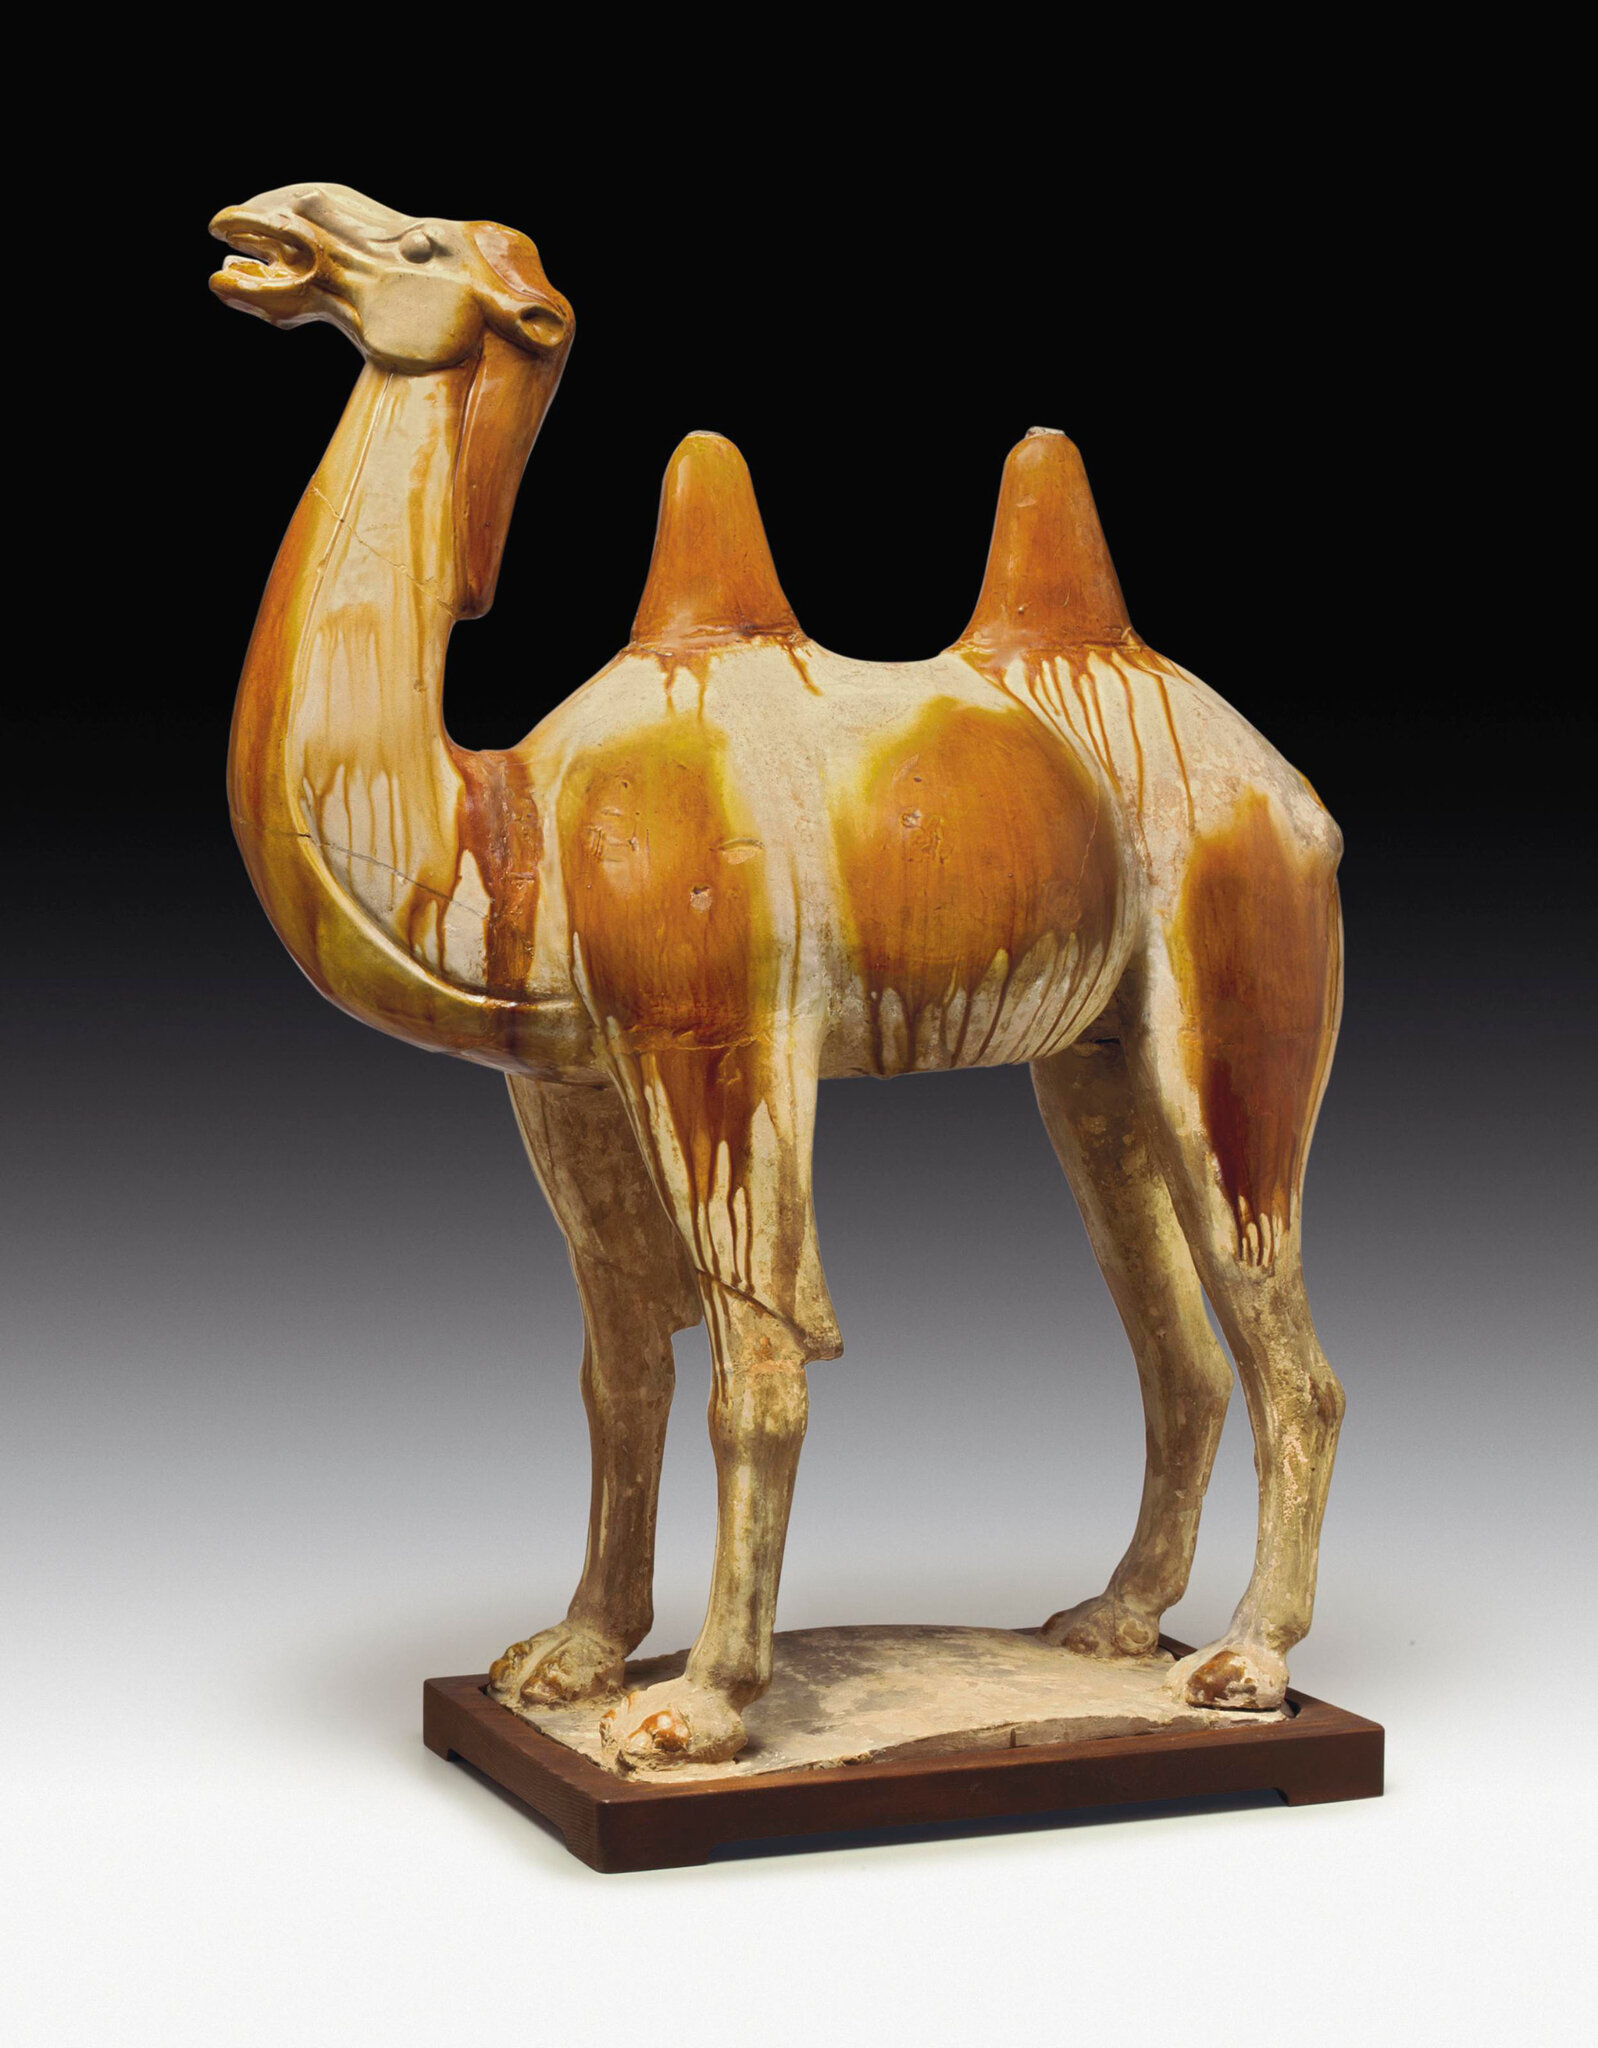 A large amber and straw-glazed pottery figure of a camel, Tang dynasty (618-907)